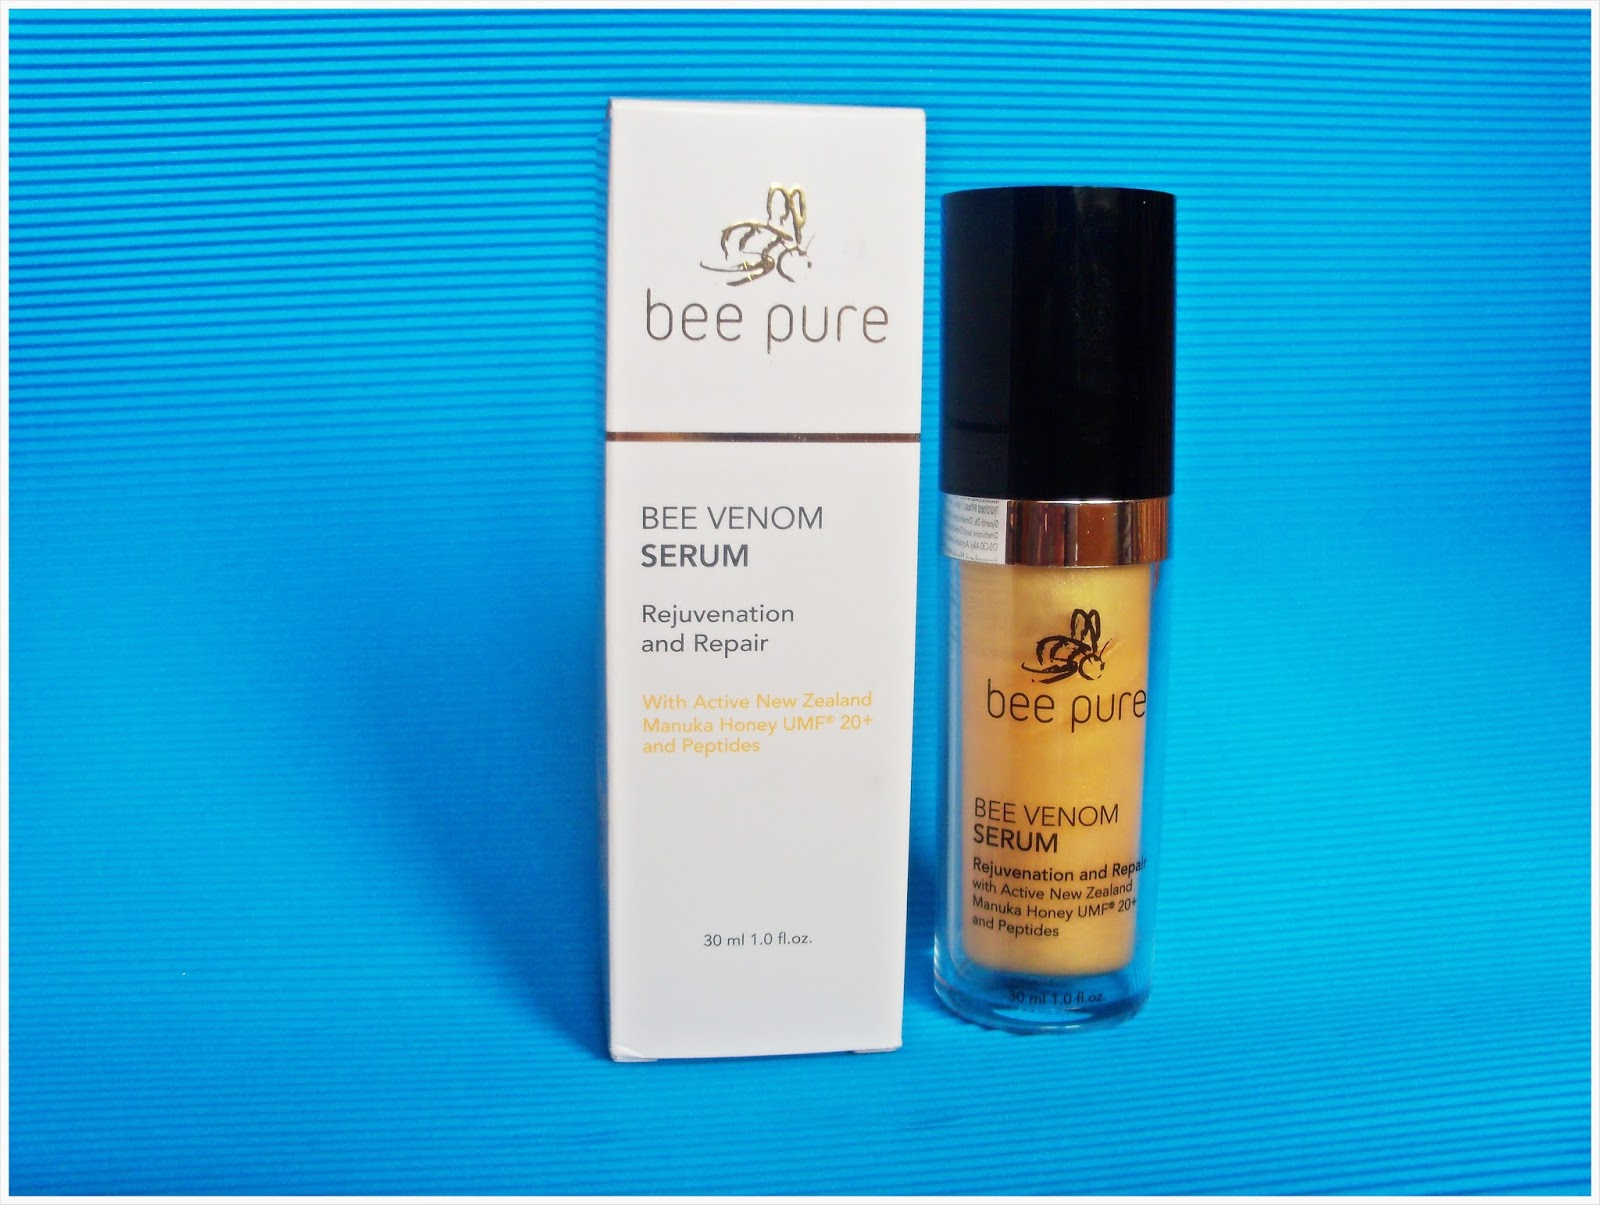 BEE PURE ( SERUM ) - BEZIGŁOWY BOTOKS?